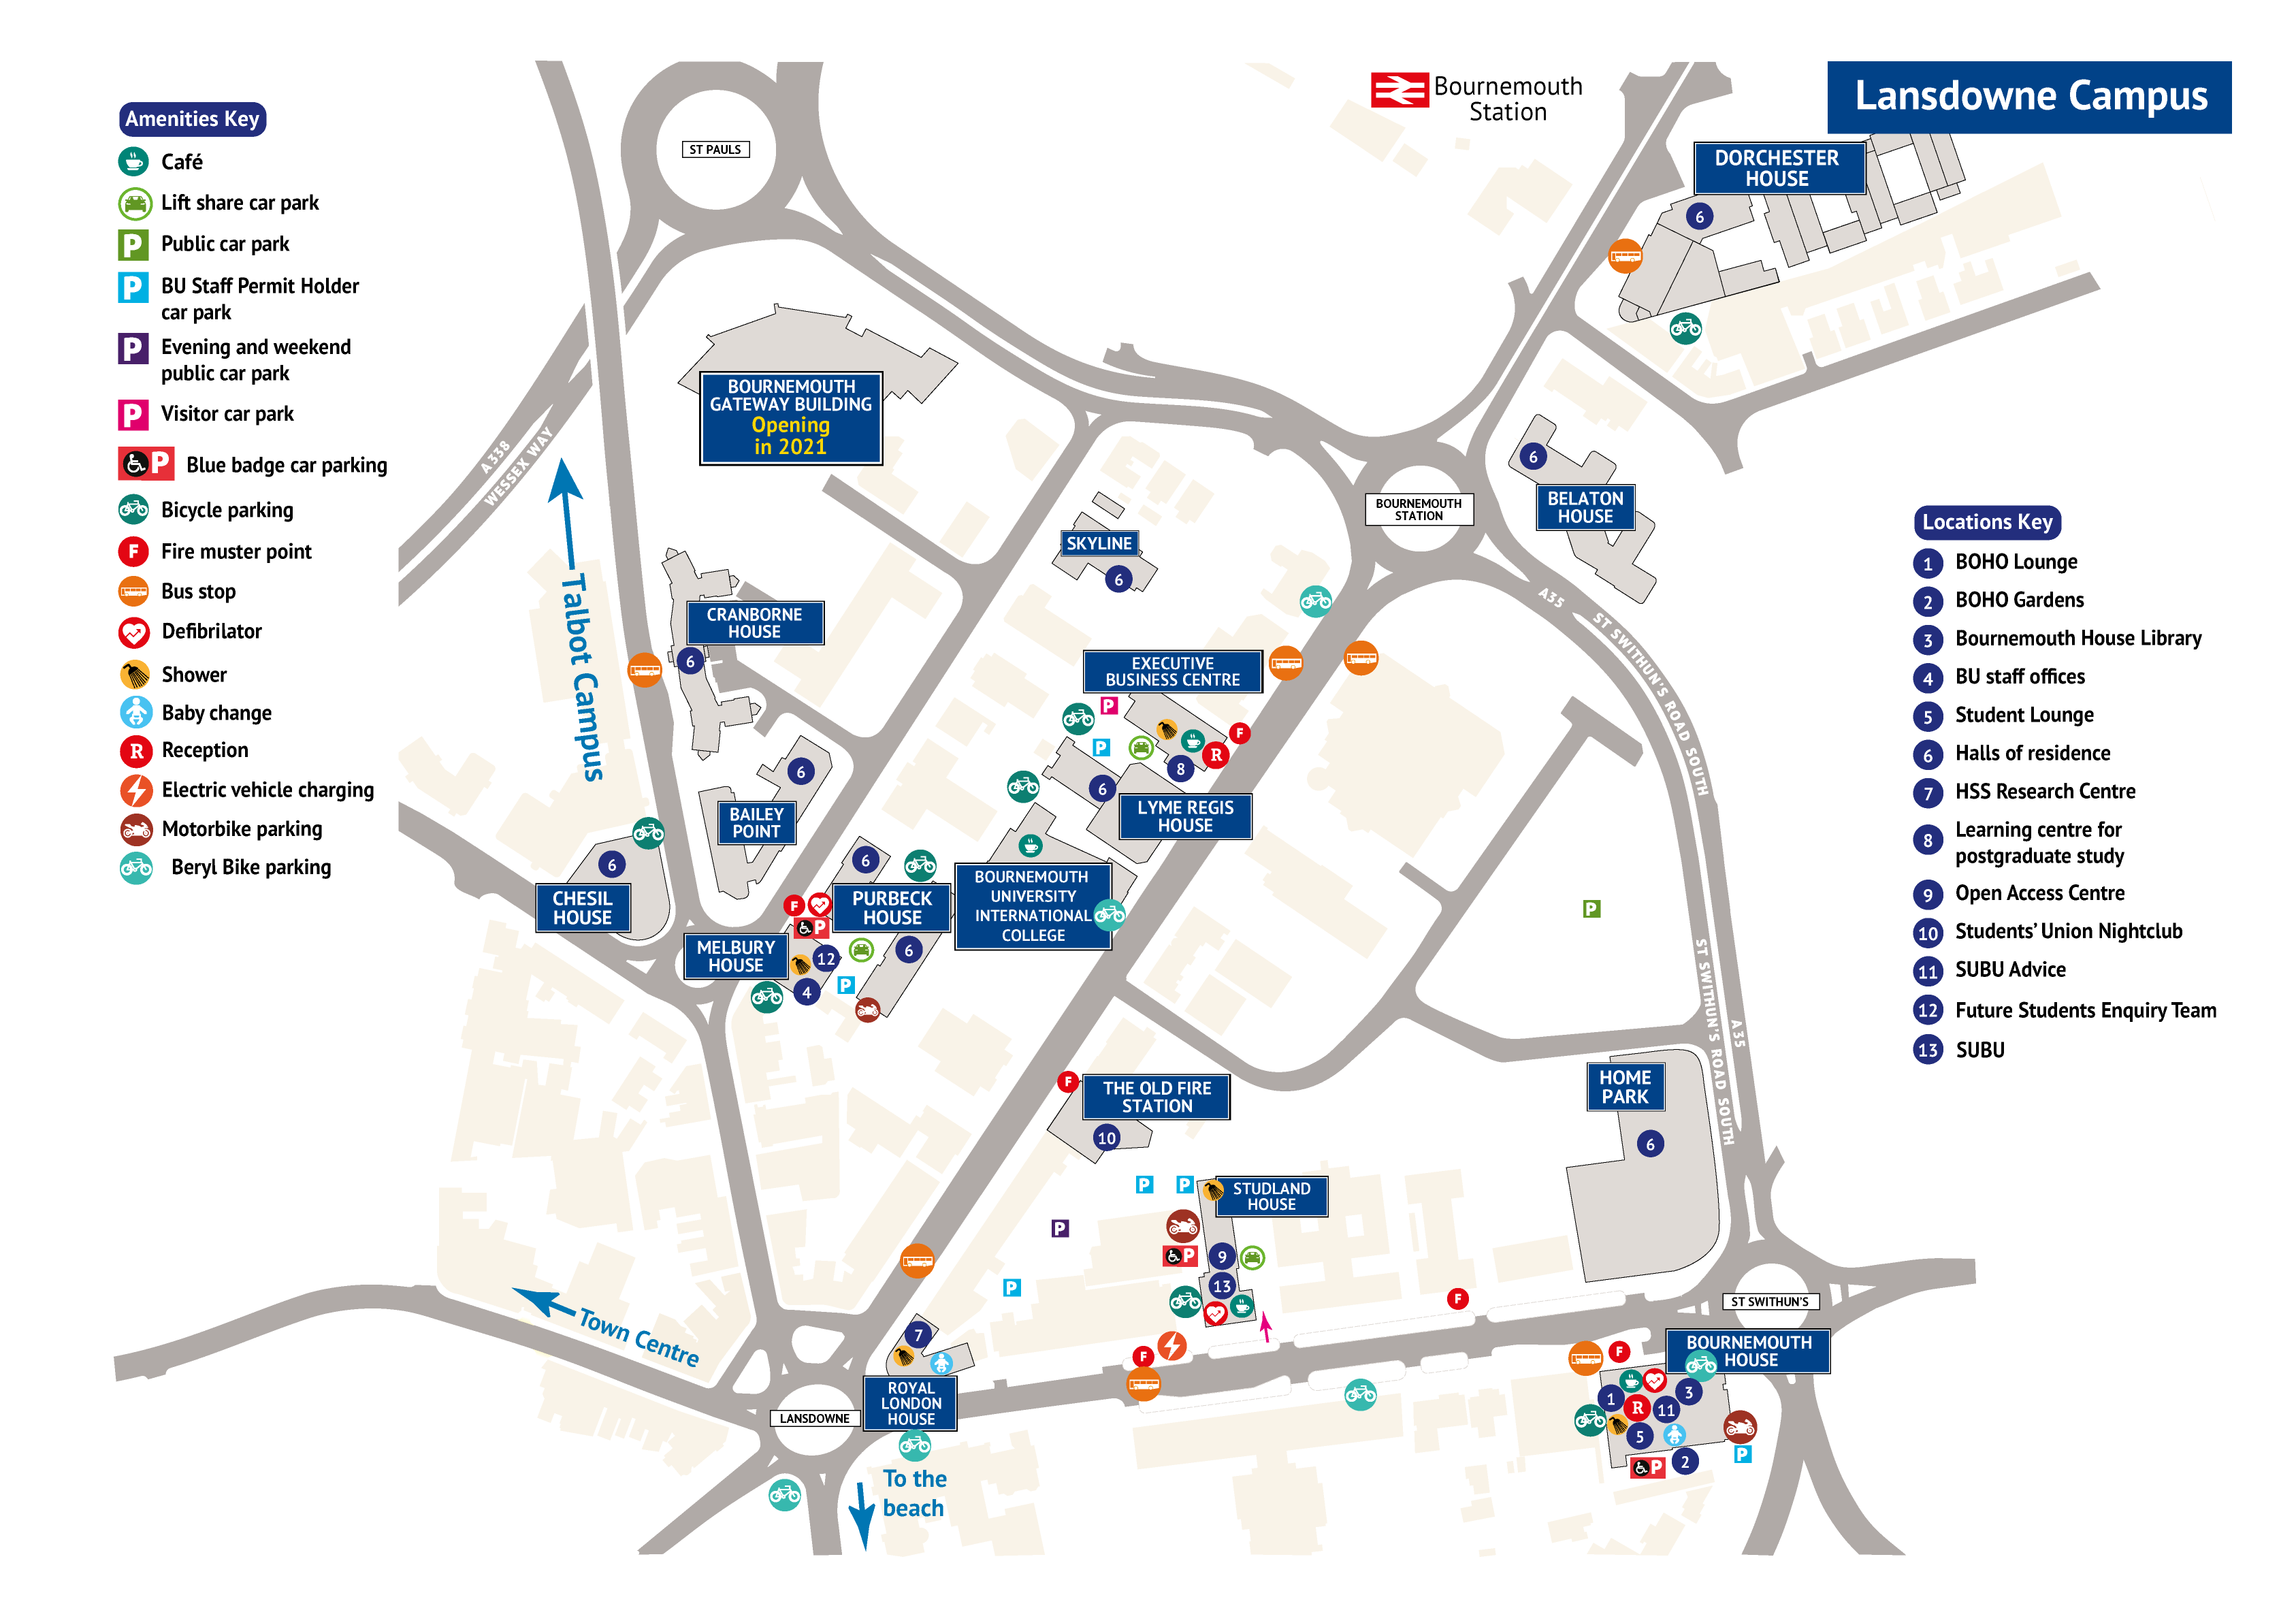 map of Lansdowne Campus with points on interest. Contact formats@bournemouth.ac.uk if you require this in braile or large print.